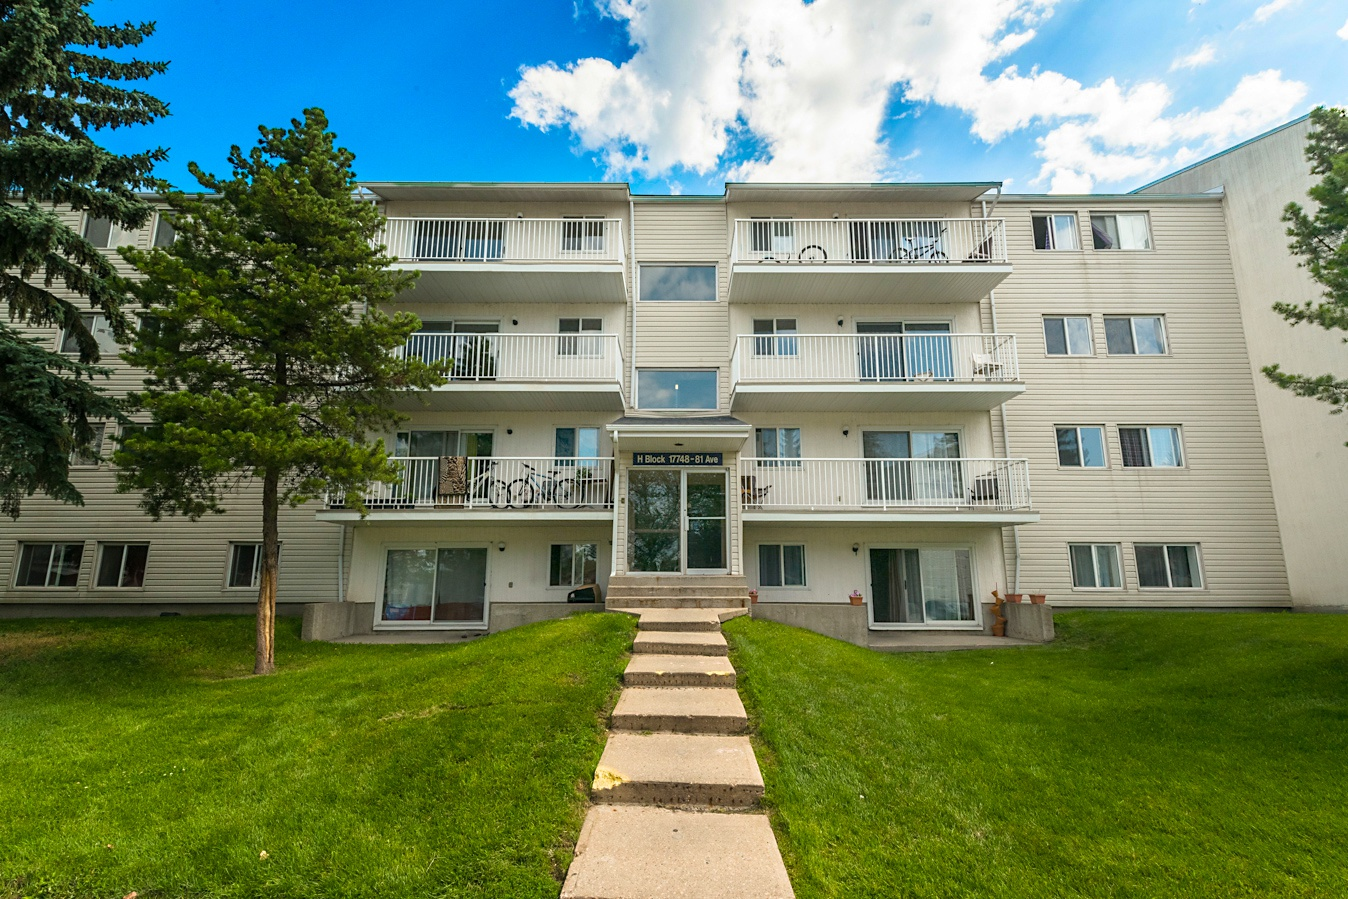 17738-81 Ave. in Edmonton, AB is Now Available